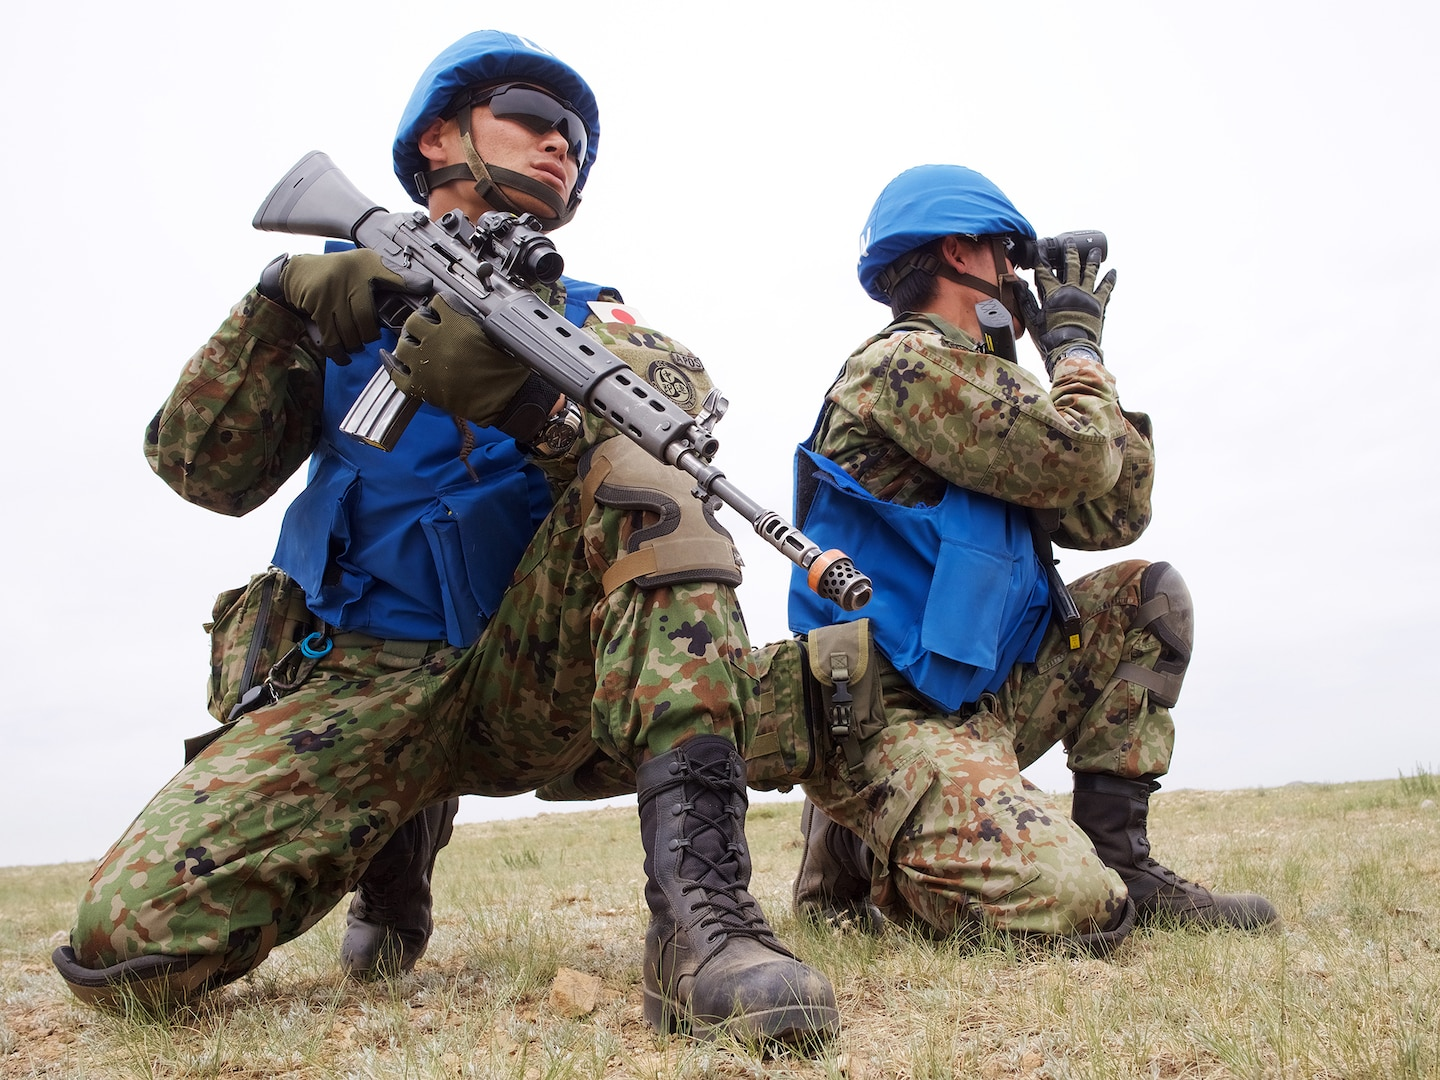 Japan Ground Self-Defense Force soldiers train for UN patrolling in Mongolia